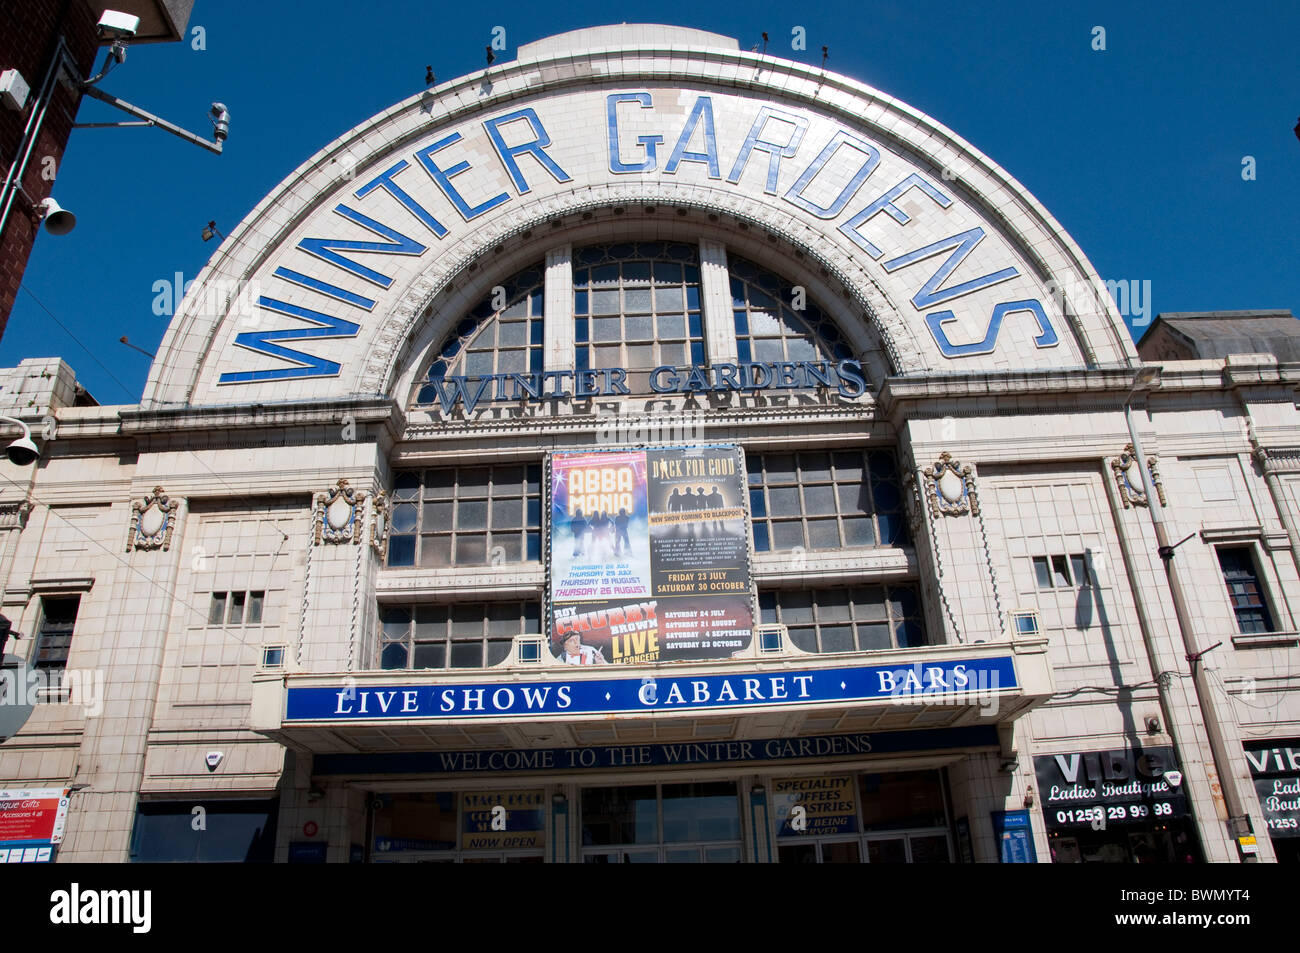 The Entrance facade of the Winter GardensTheatre in Blackpool on the coast of Lancashire in Northern England - Stock Image